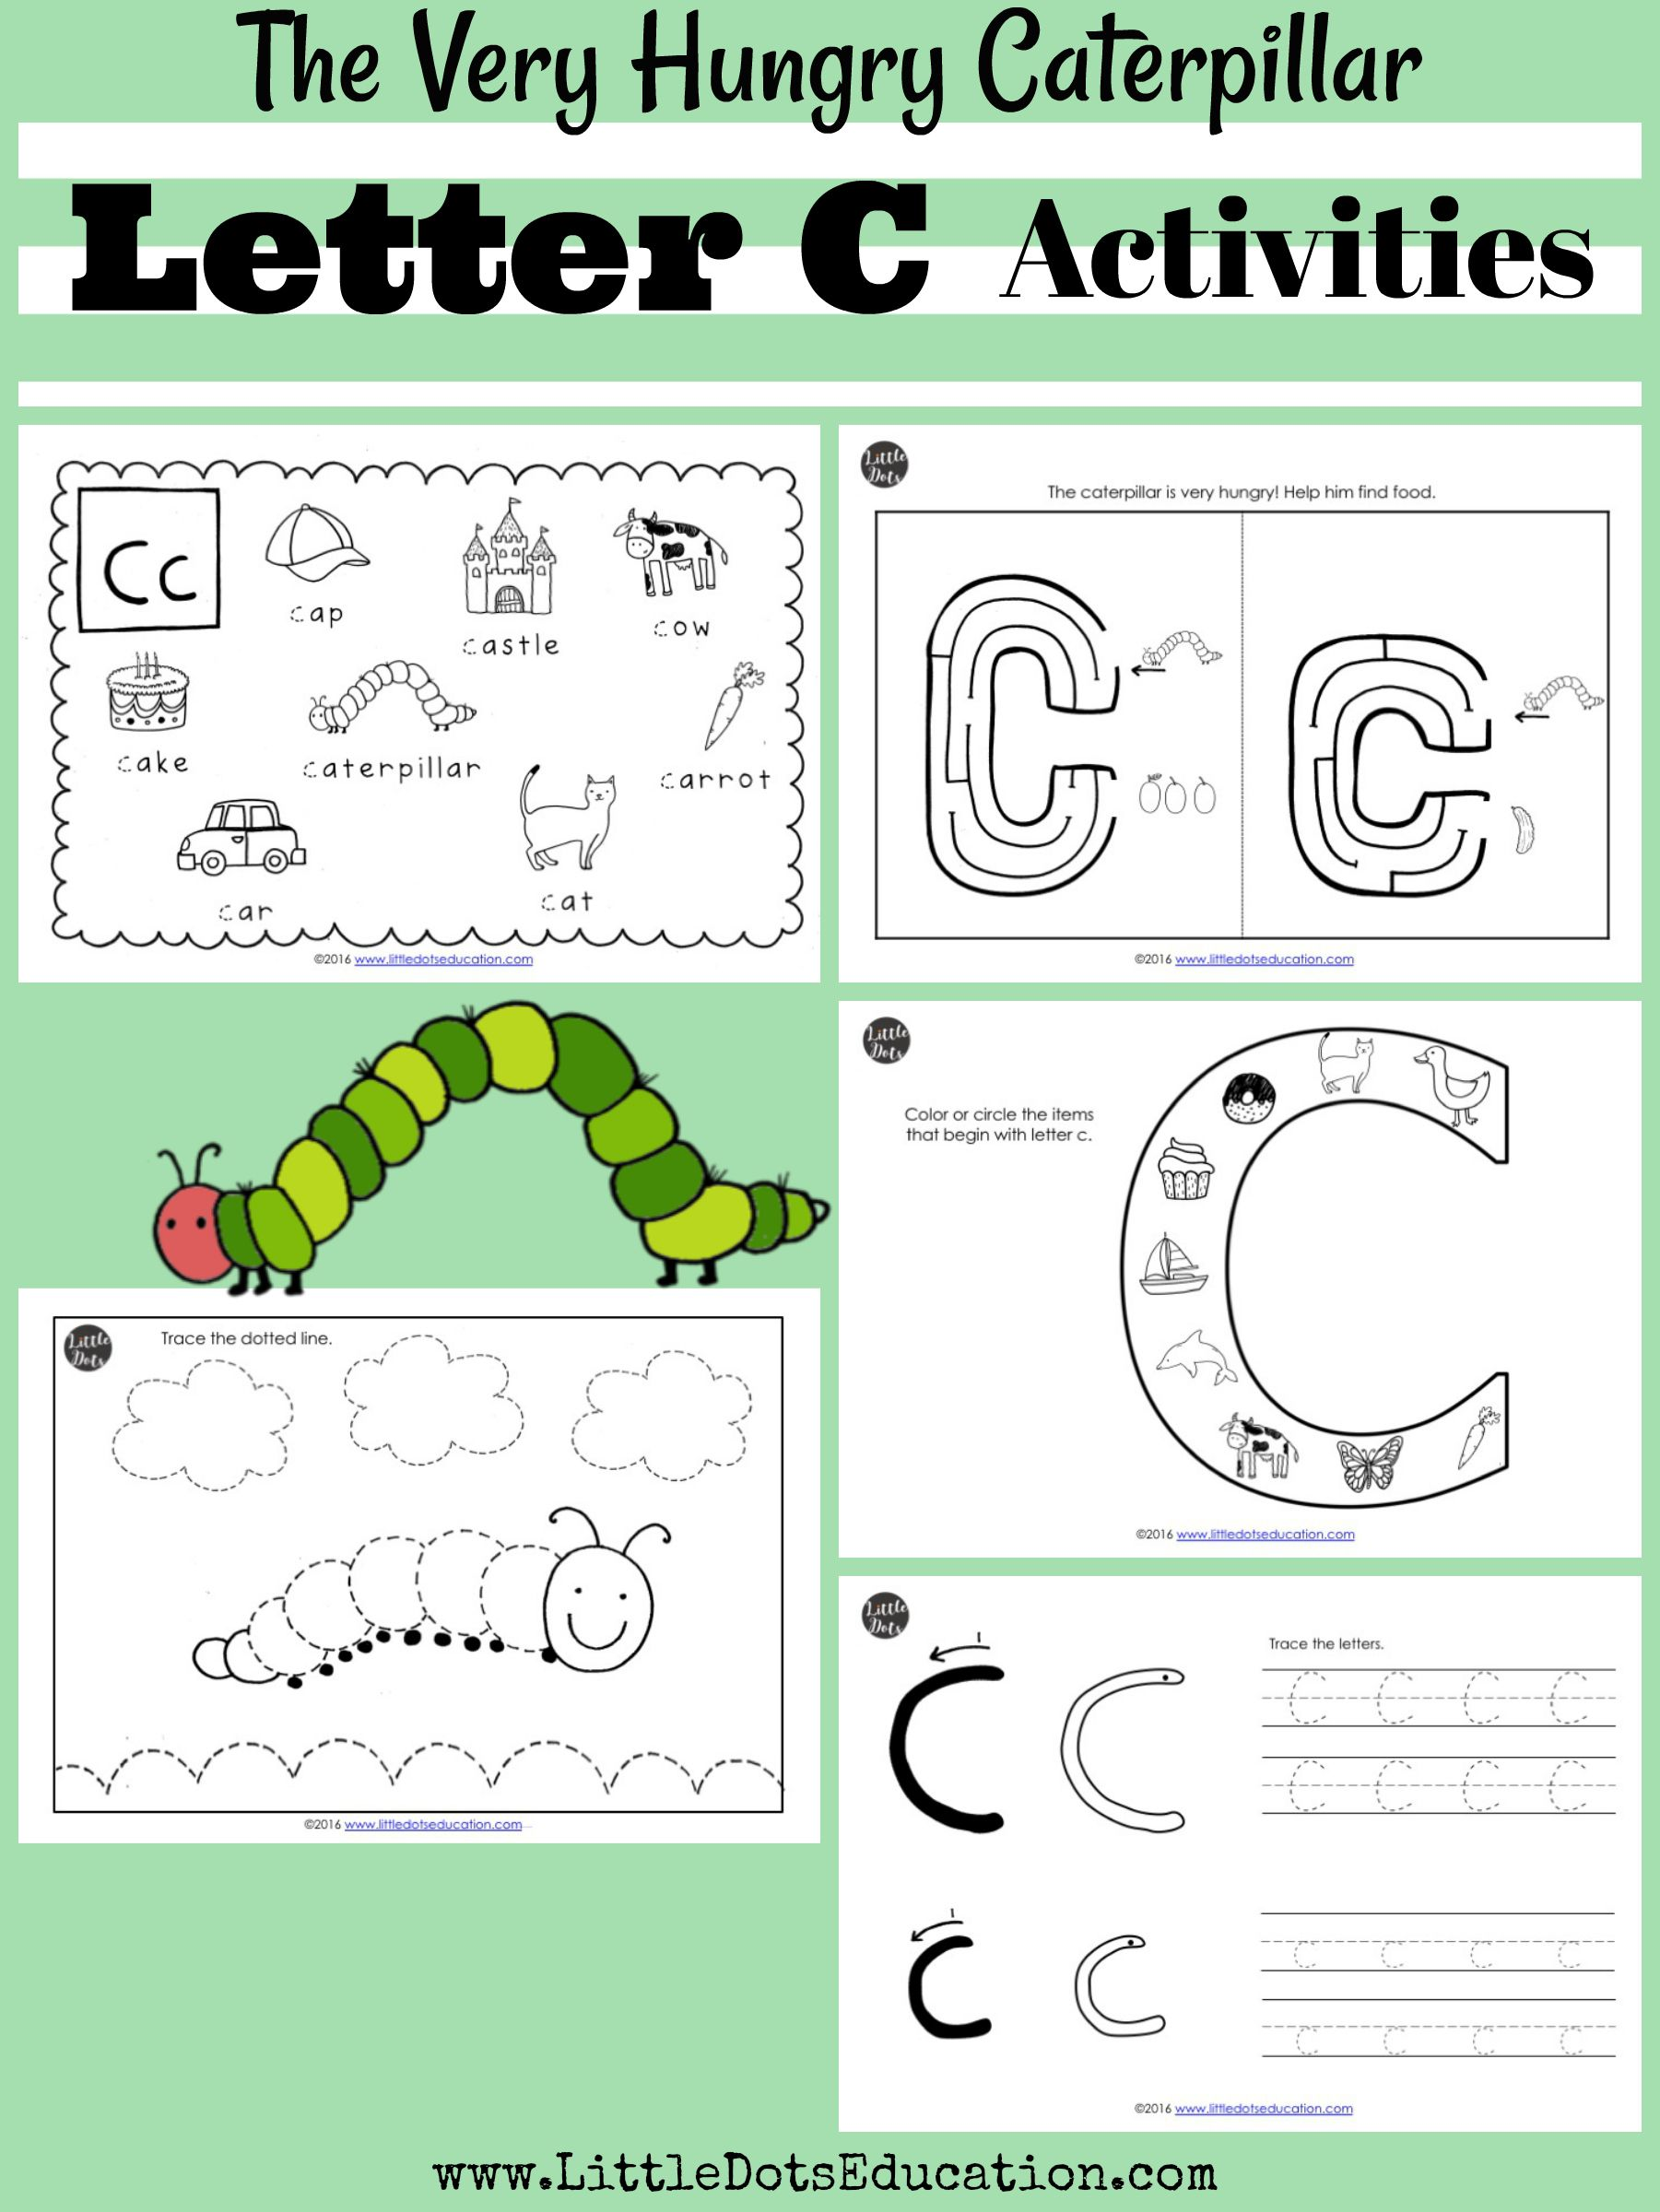 The Very Hungry Caterpillar Theme C For Caterpillar